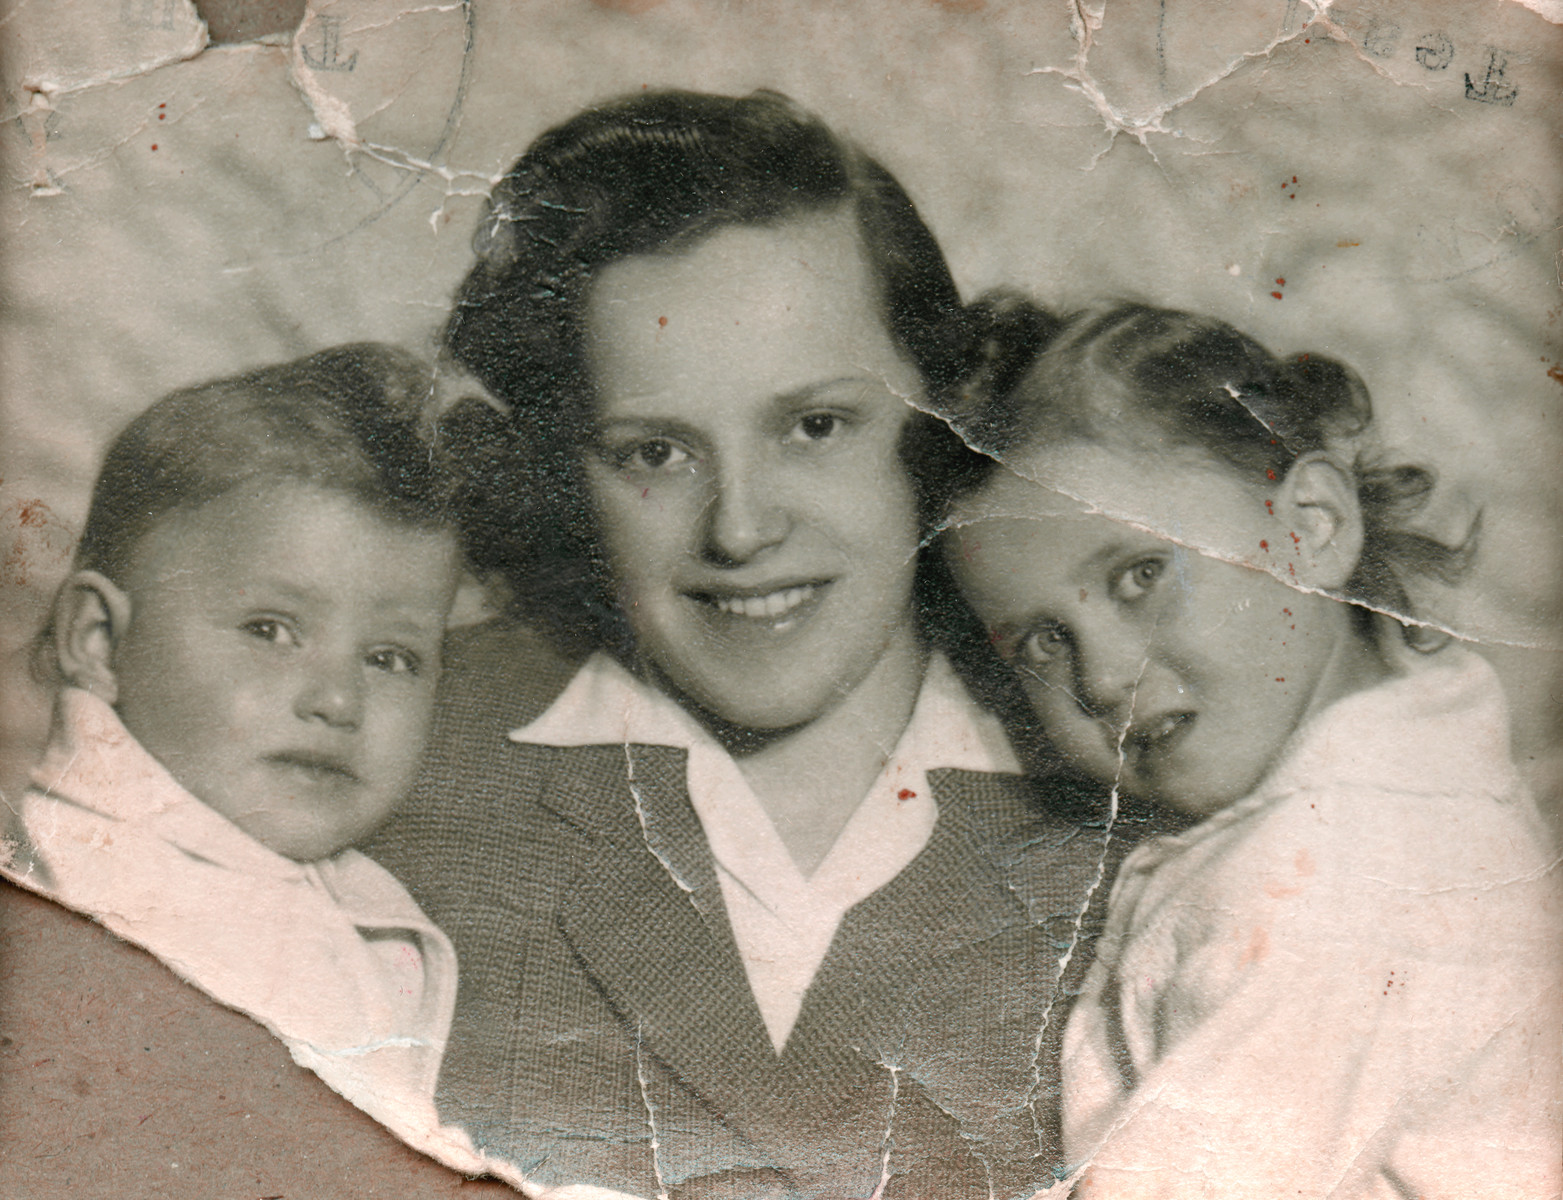 Sara Meisels poses with her two daughters Miriam (left) and Yehudit (right.).